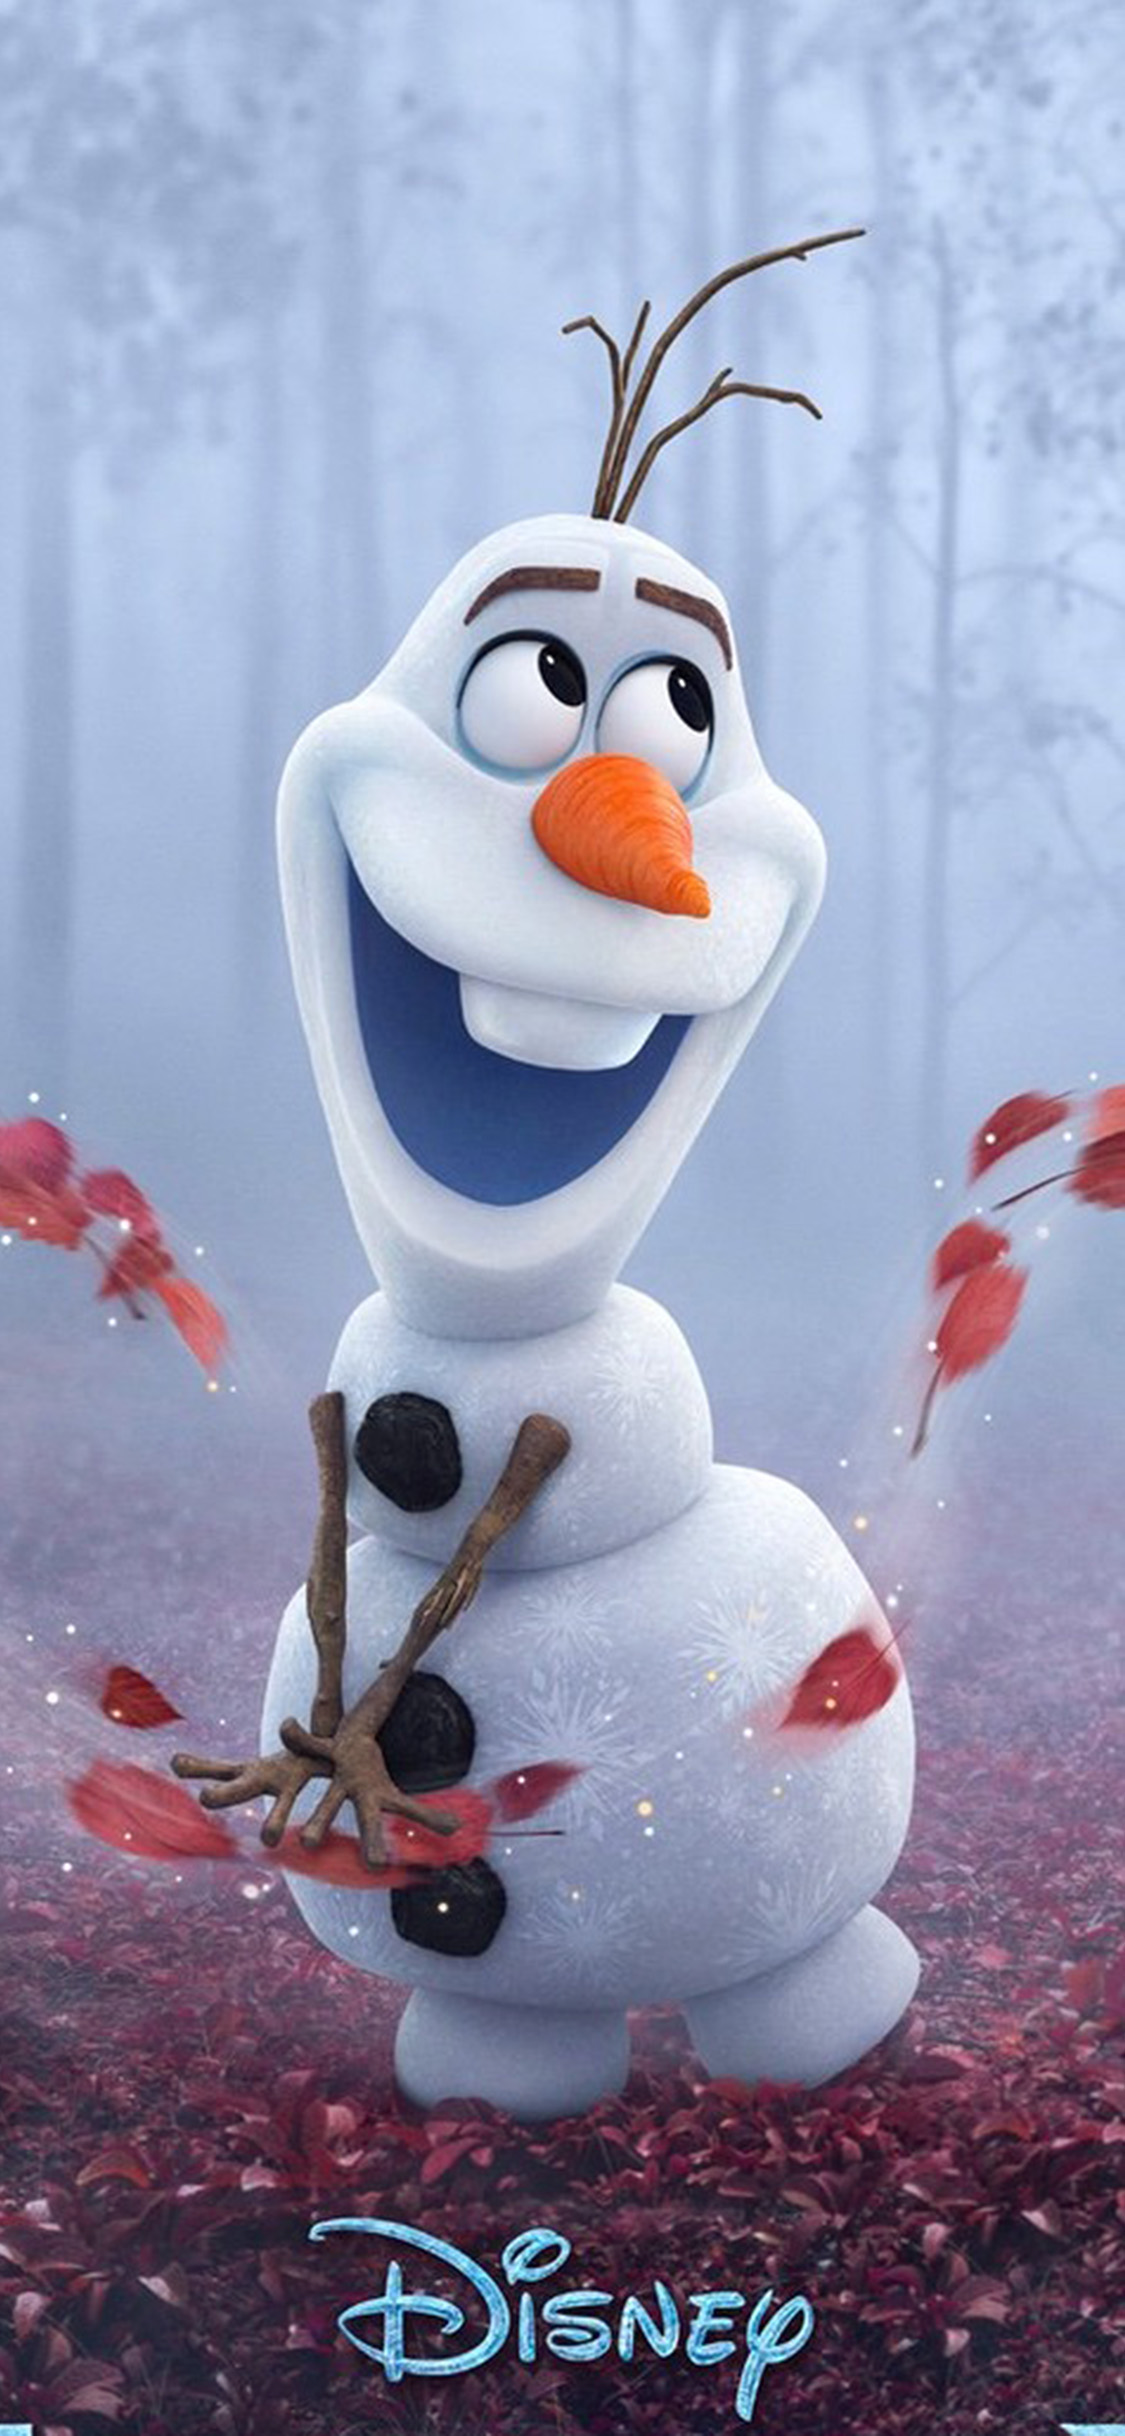 iPhonexpapers.com-Apple-iPhone-wallpaper-bj52-frozen-olaf-cute-disney-film-art